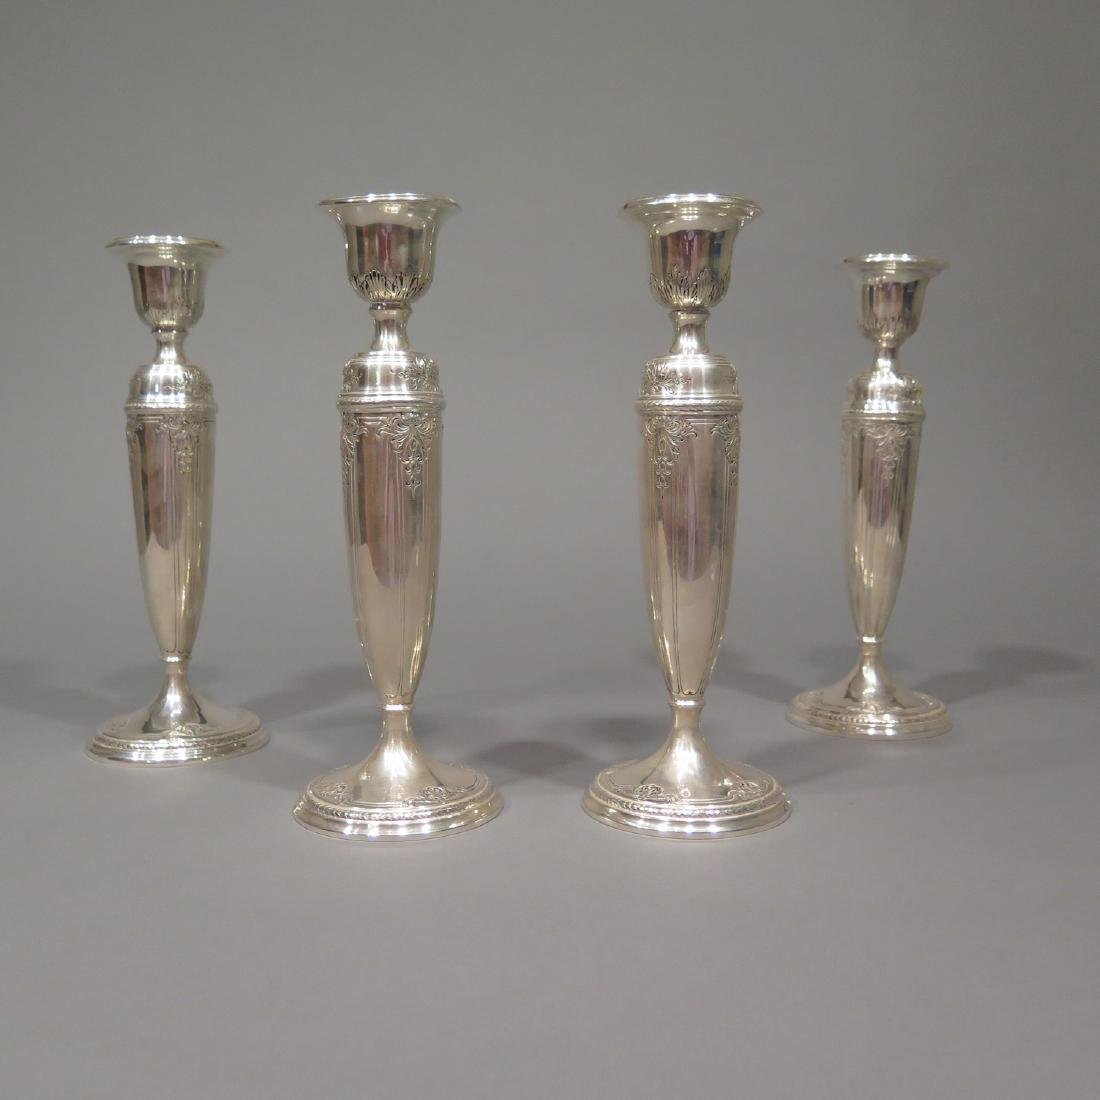 4 Sterling Silver Candlesticks - 2